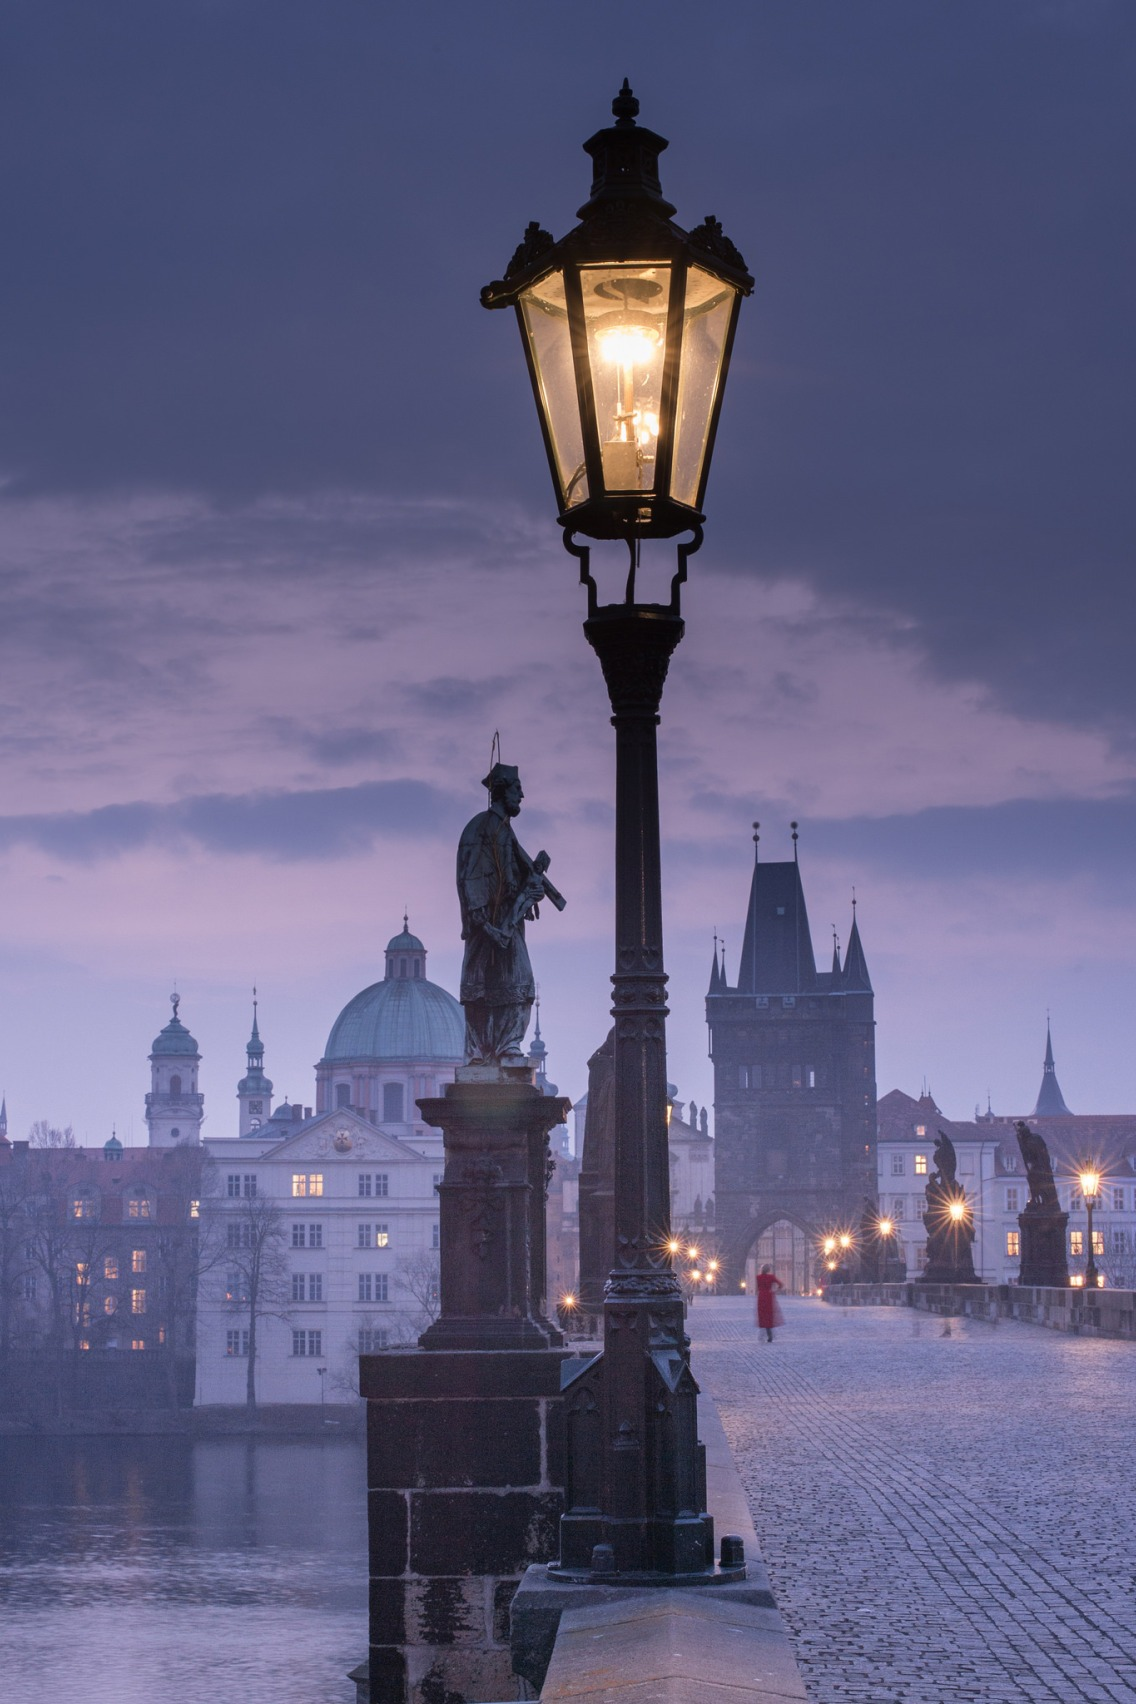 prague night brigde atmosphere light street